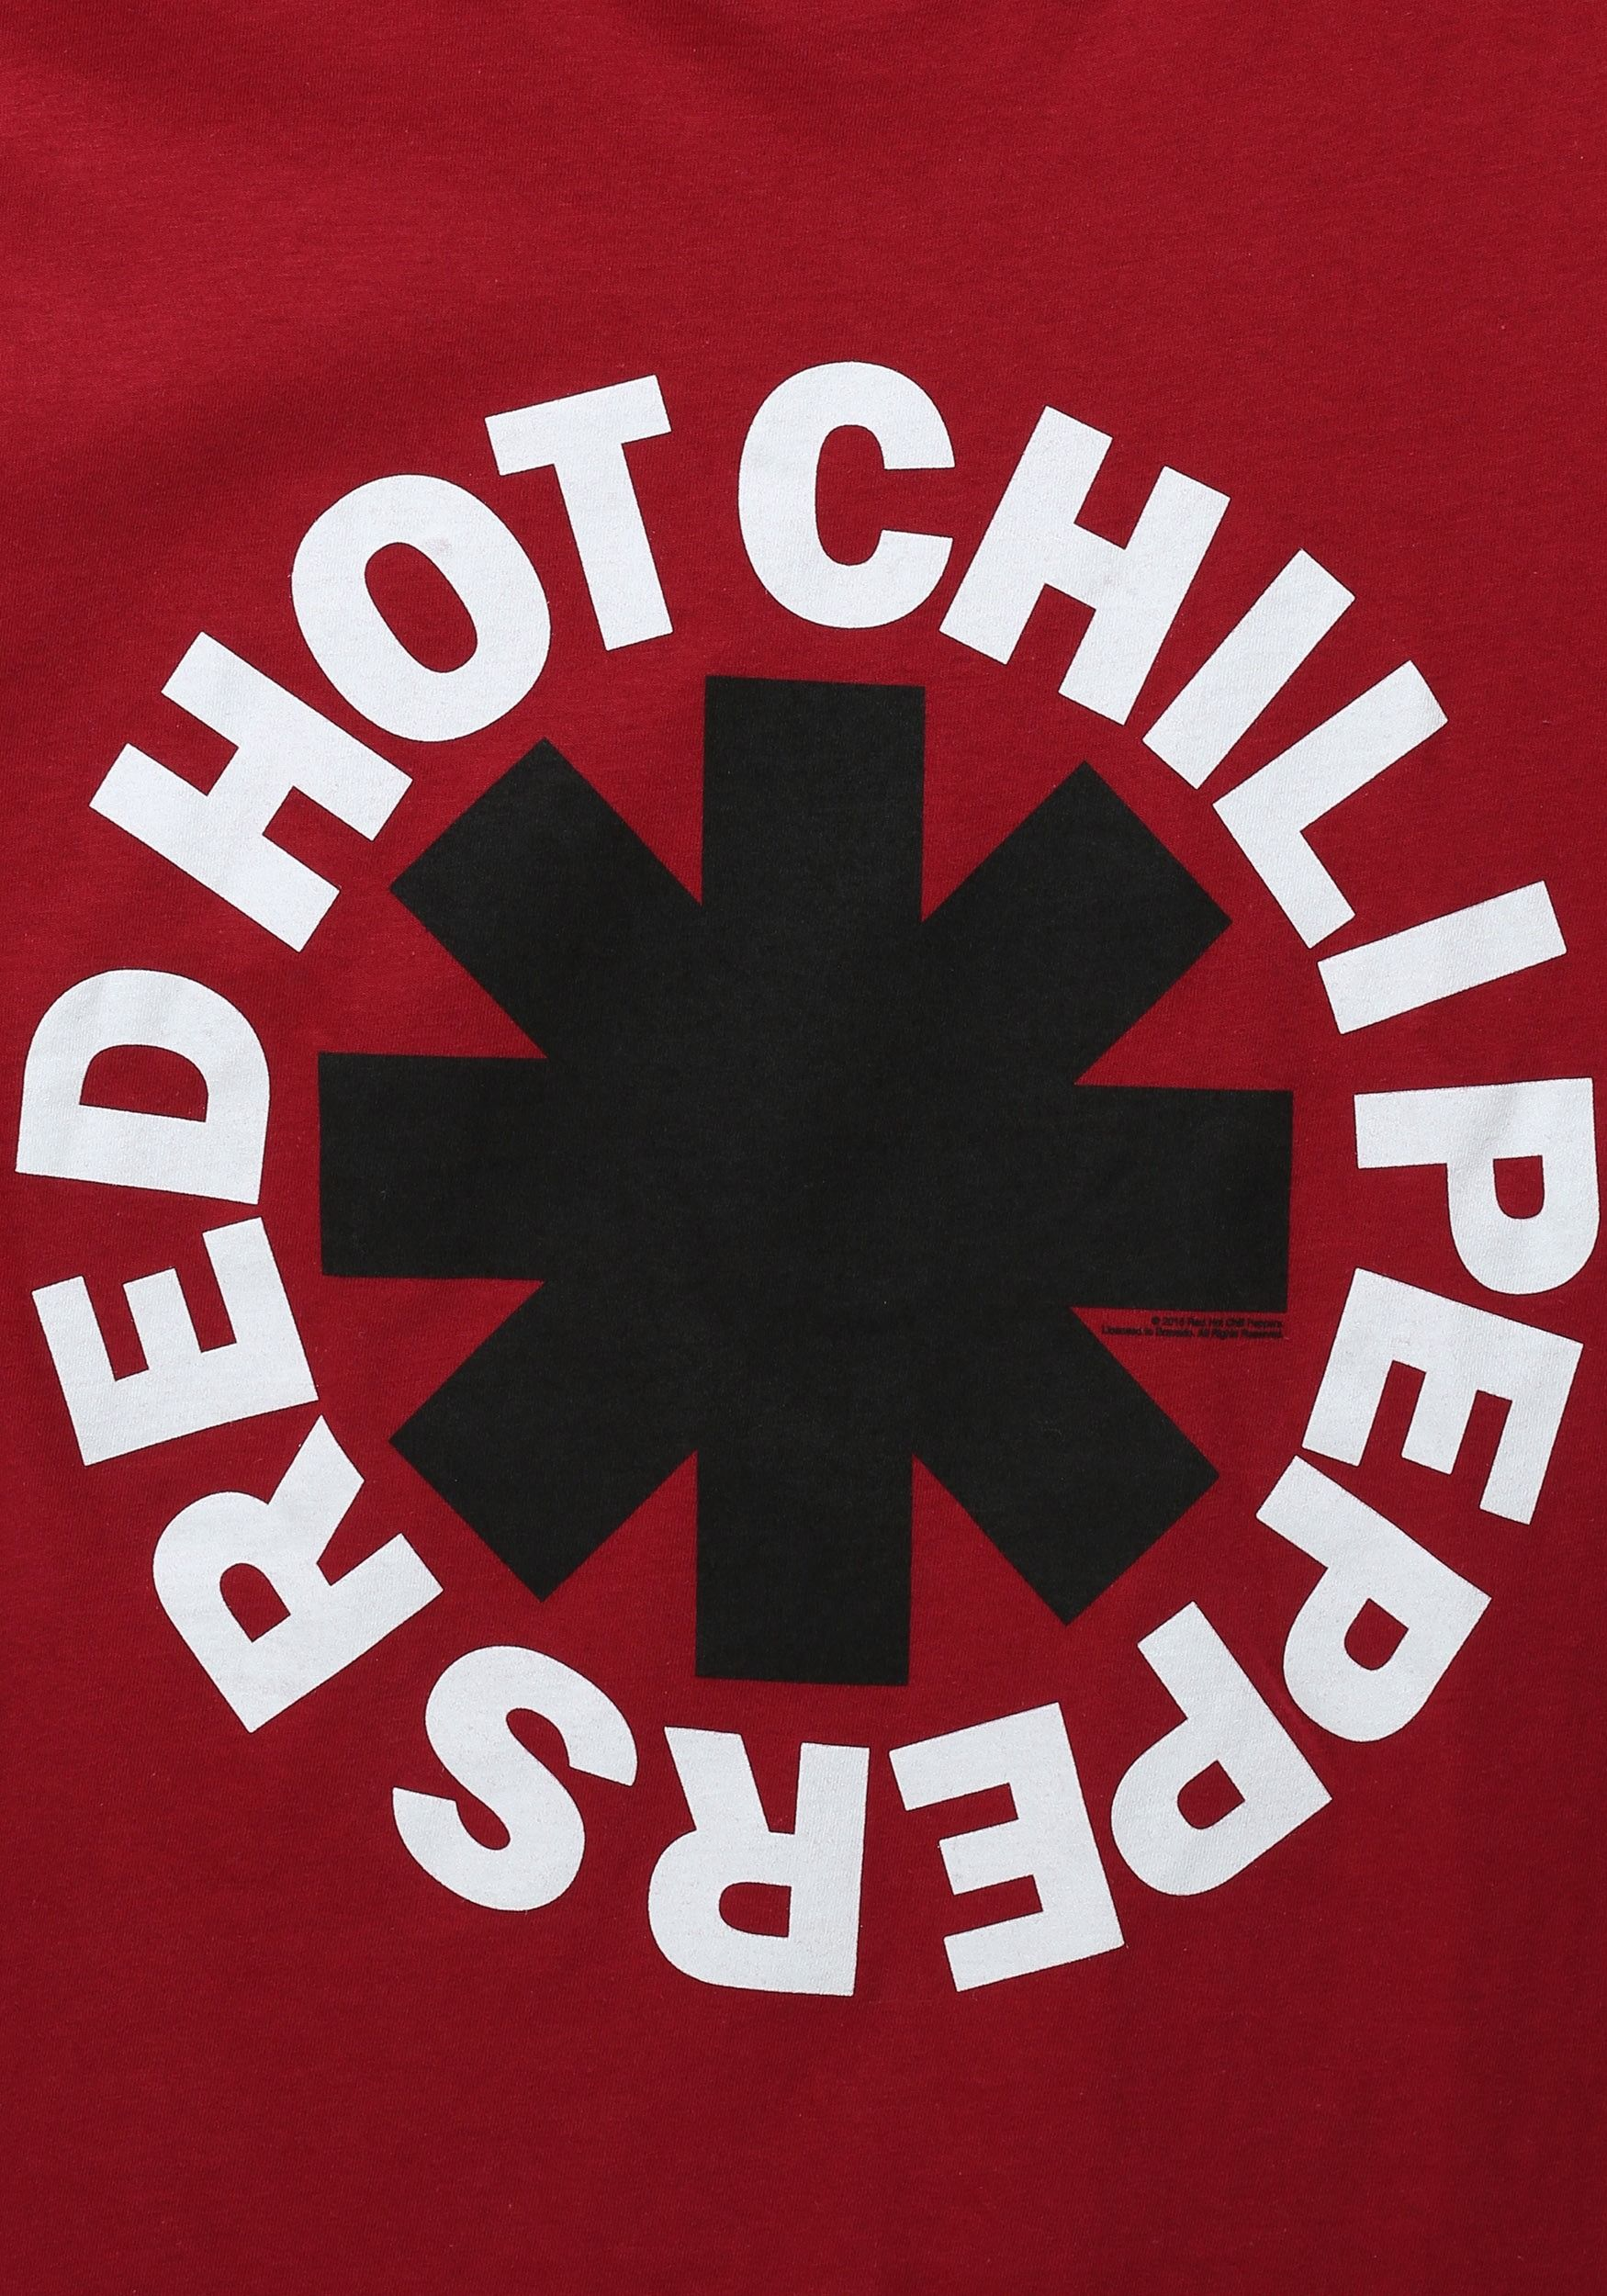 Red Hot Chili Peppers Wallpapers Top Free Red Hot Chili Peppers Backgrounds Wallpaperaccess